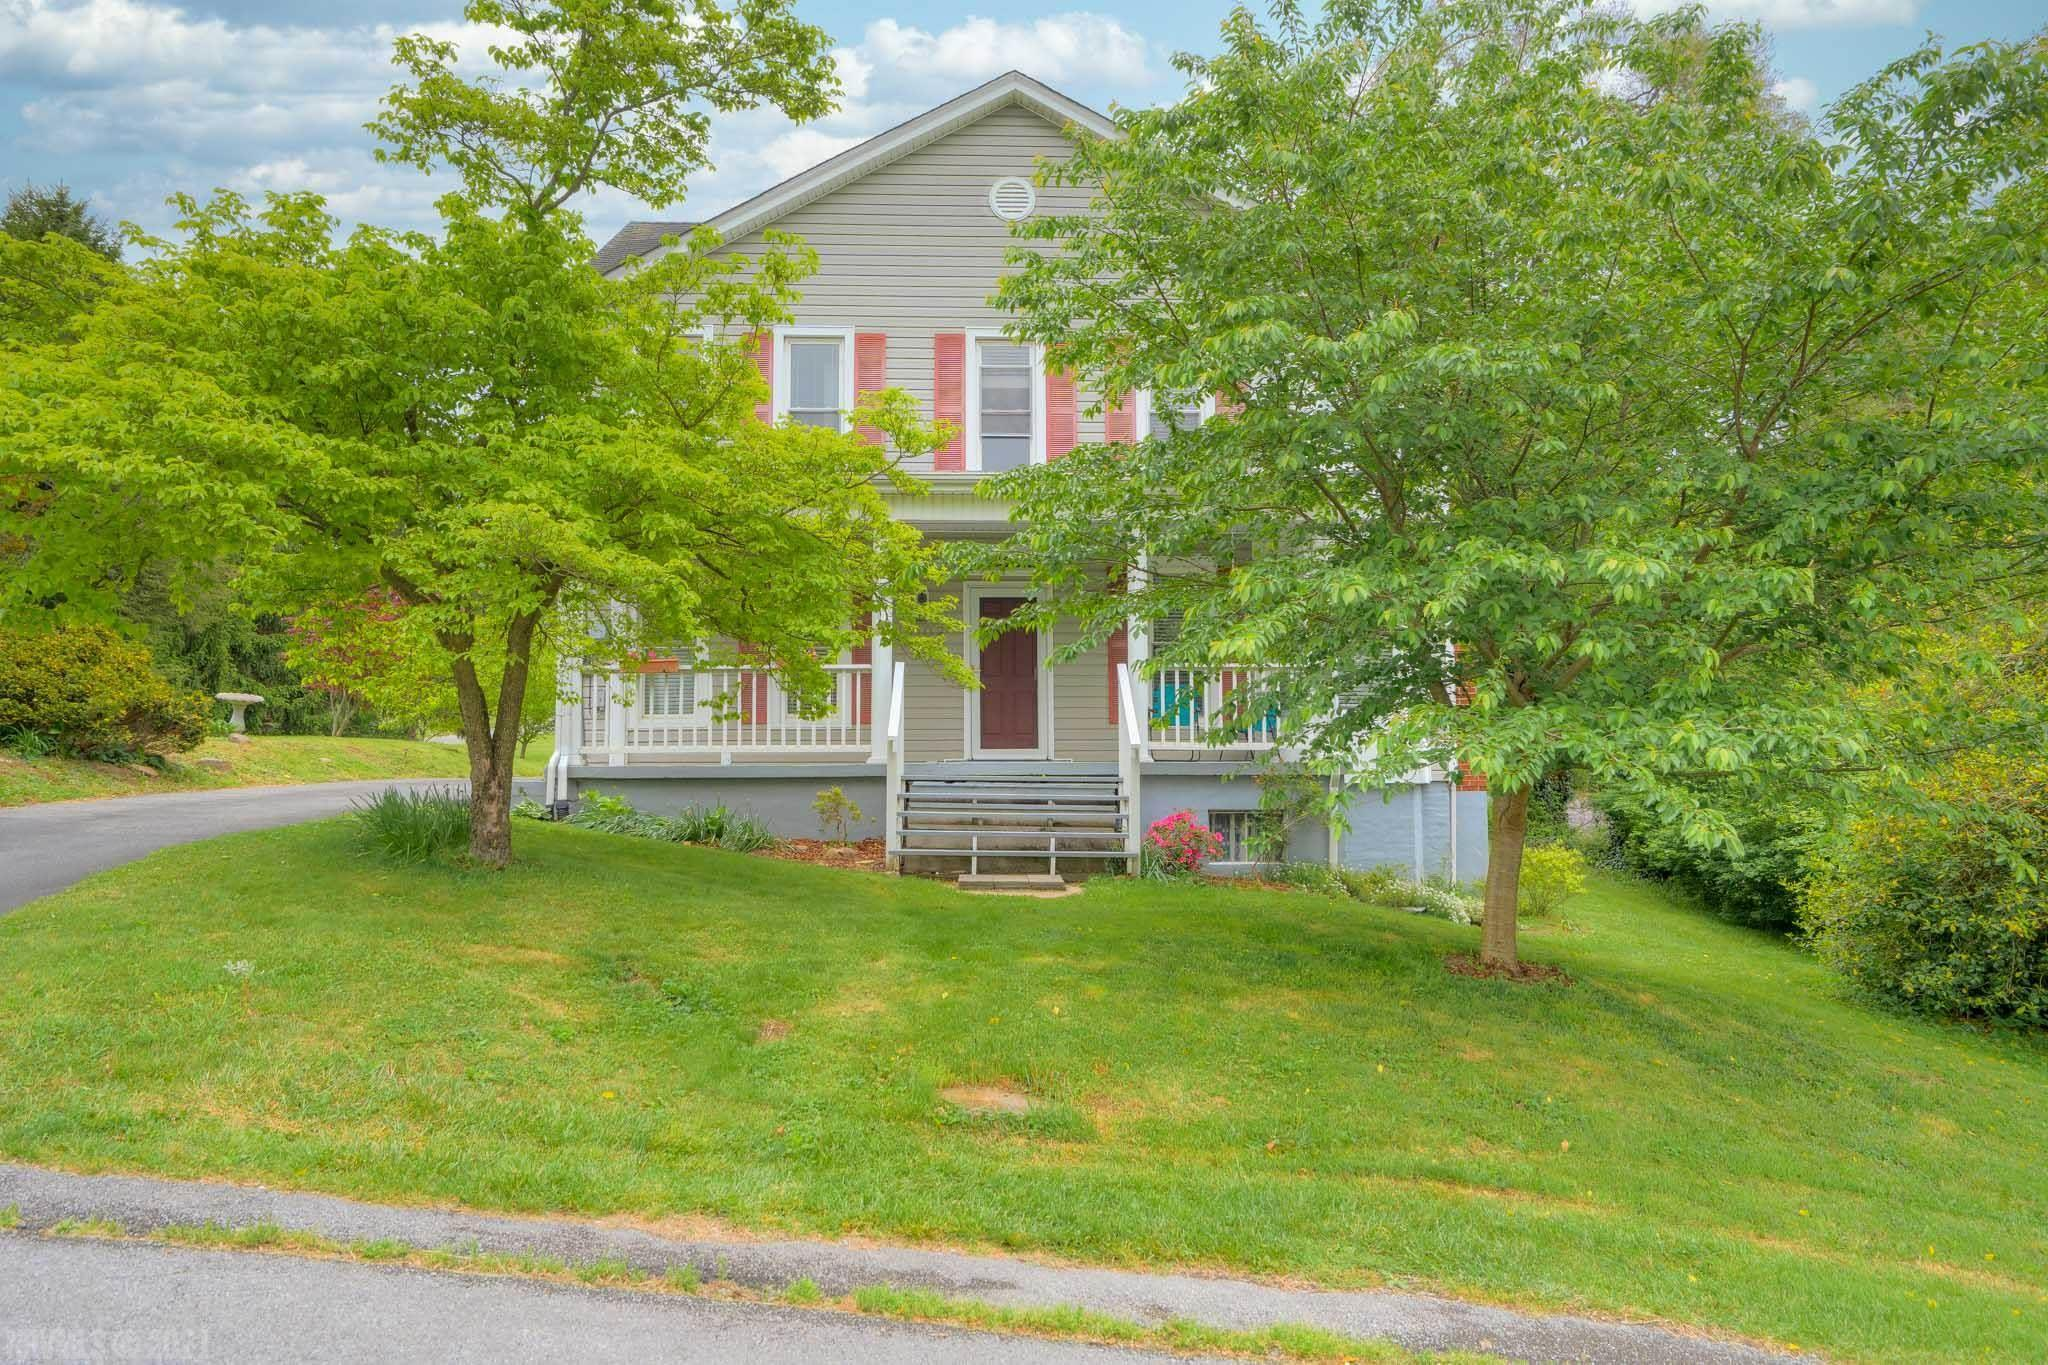 Come home to this classic 4 square home in the heart of Radford.   This lovely home with 1940 sqft with 3 bedrooms, 2 full baths has all the room you'll need to live comfortably.  Original hardwood floors, and a newer kitchen and bathrooms make it move in ready.  Hard to find touches include living, family rooms, original woodwork and more.  Oversized detached 2 car garage.  Laundry room on second floor!  Laundry room or main level family room could be converted to bedrooms if needed.  Large yard with nice landscaping and mature trees.